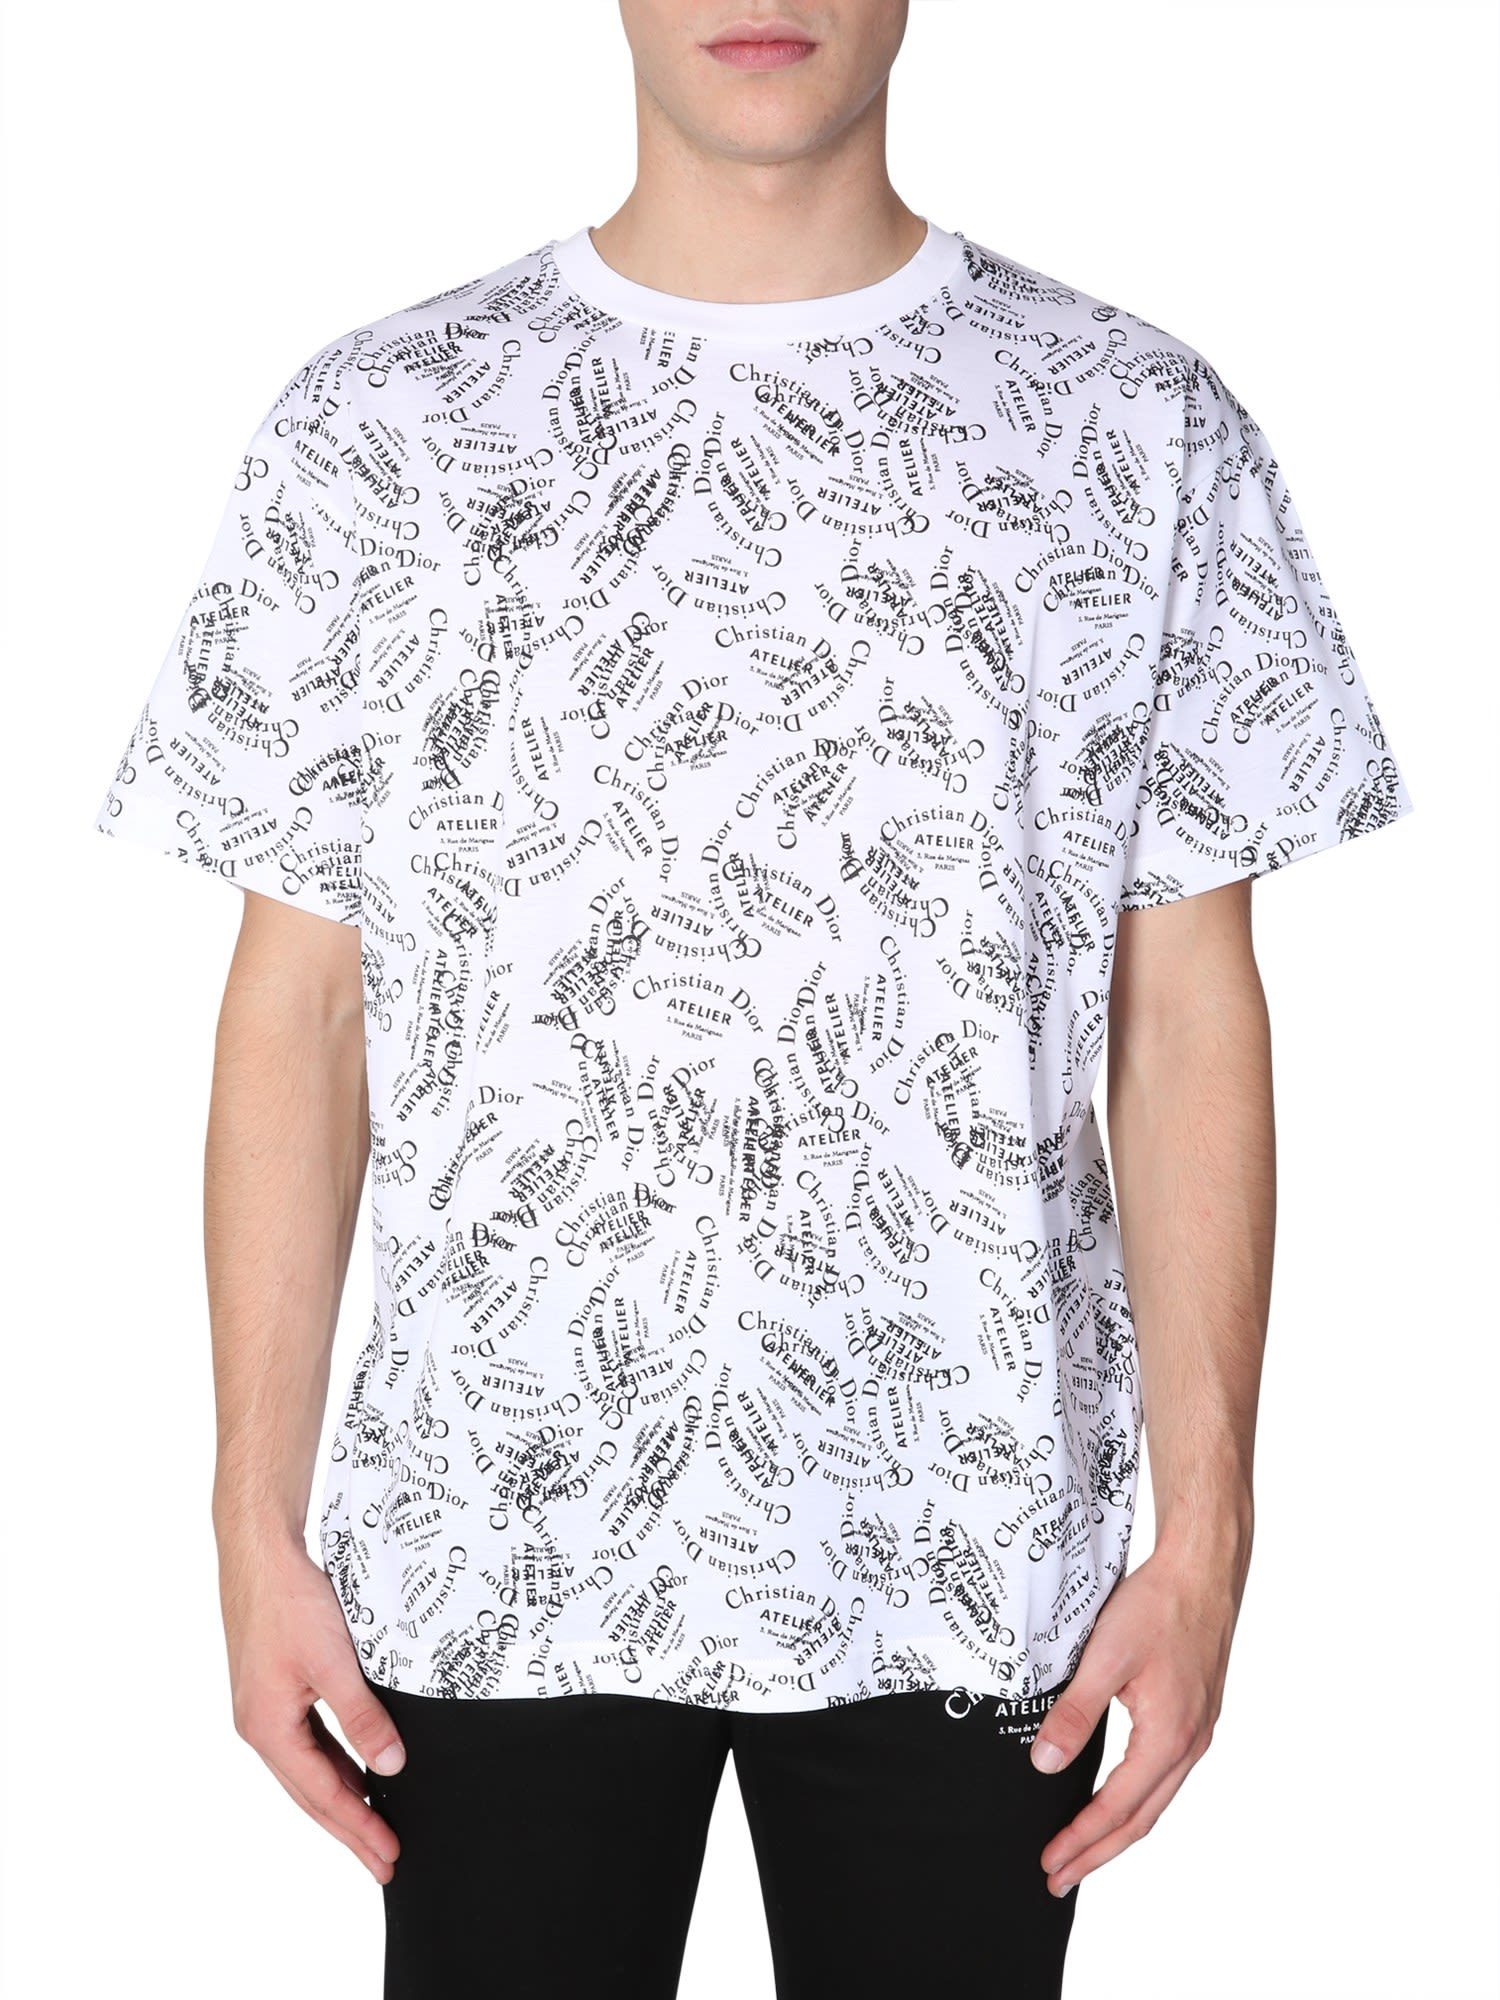 Dior Homme CHRISTIAN DIOR ATELIER PRINTED T-SHIRT